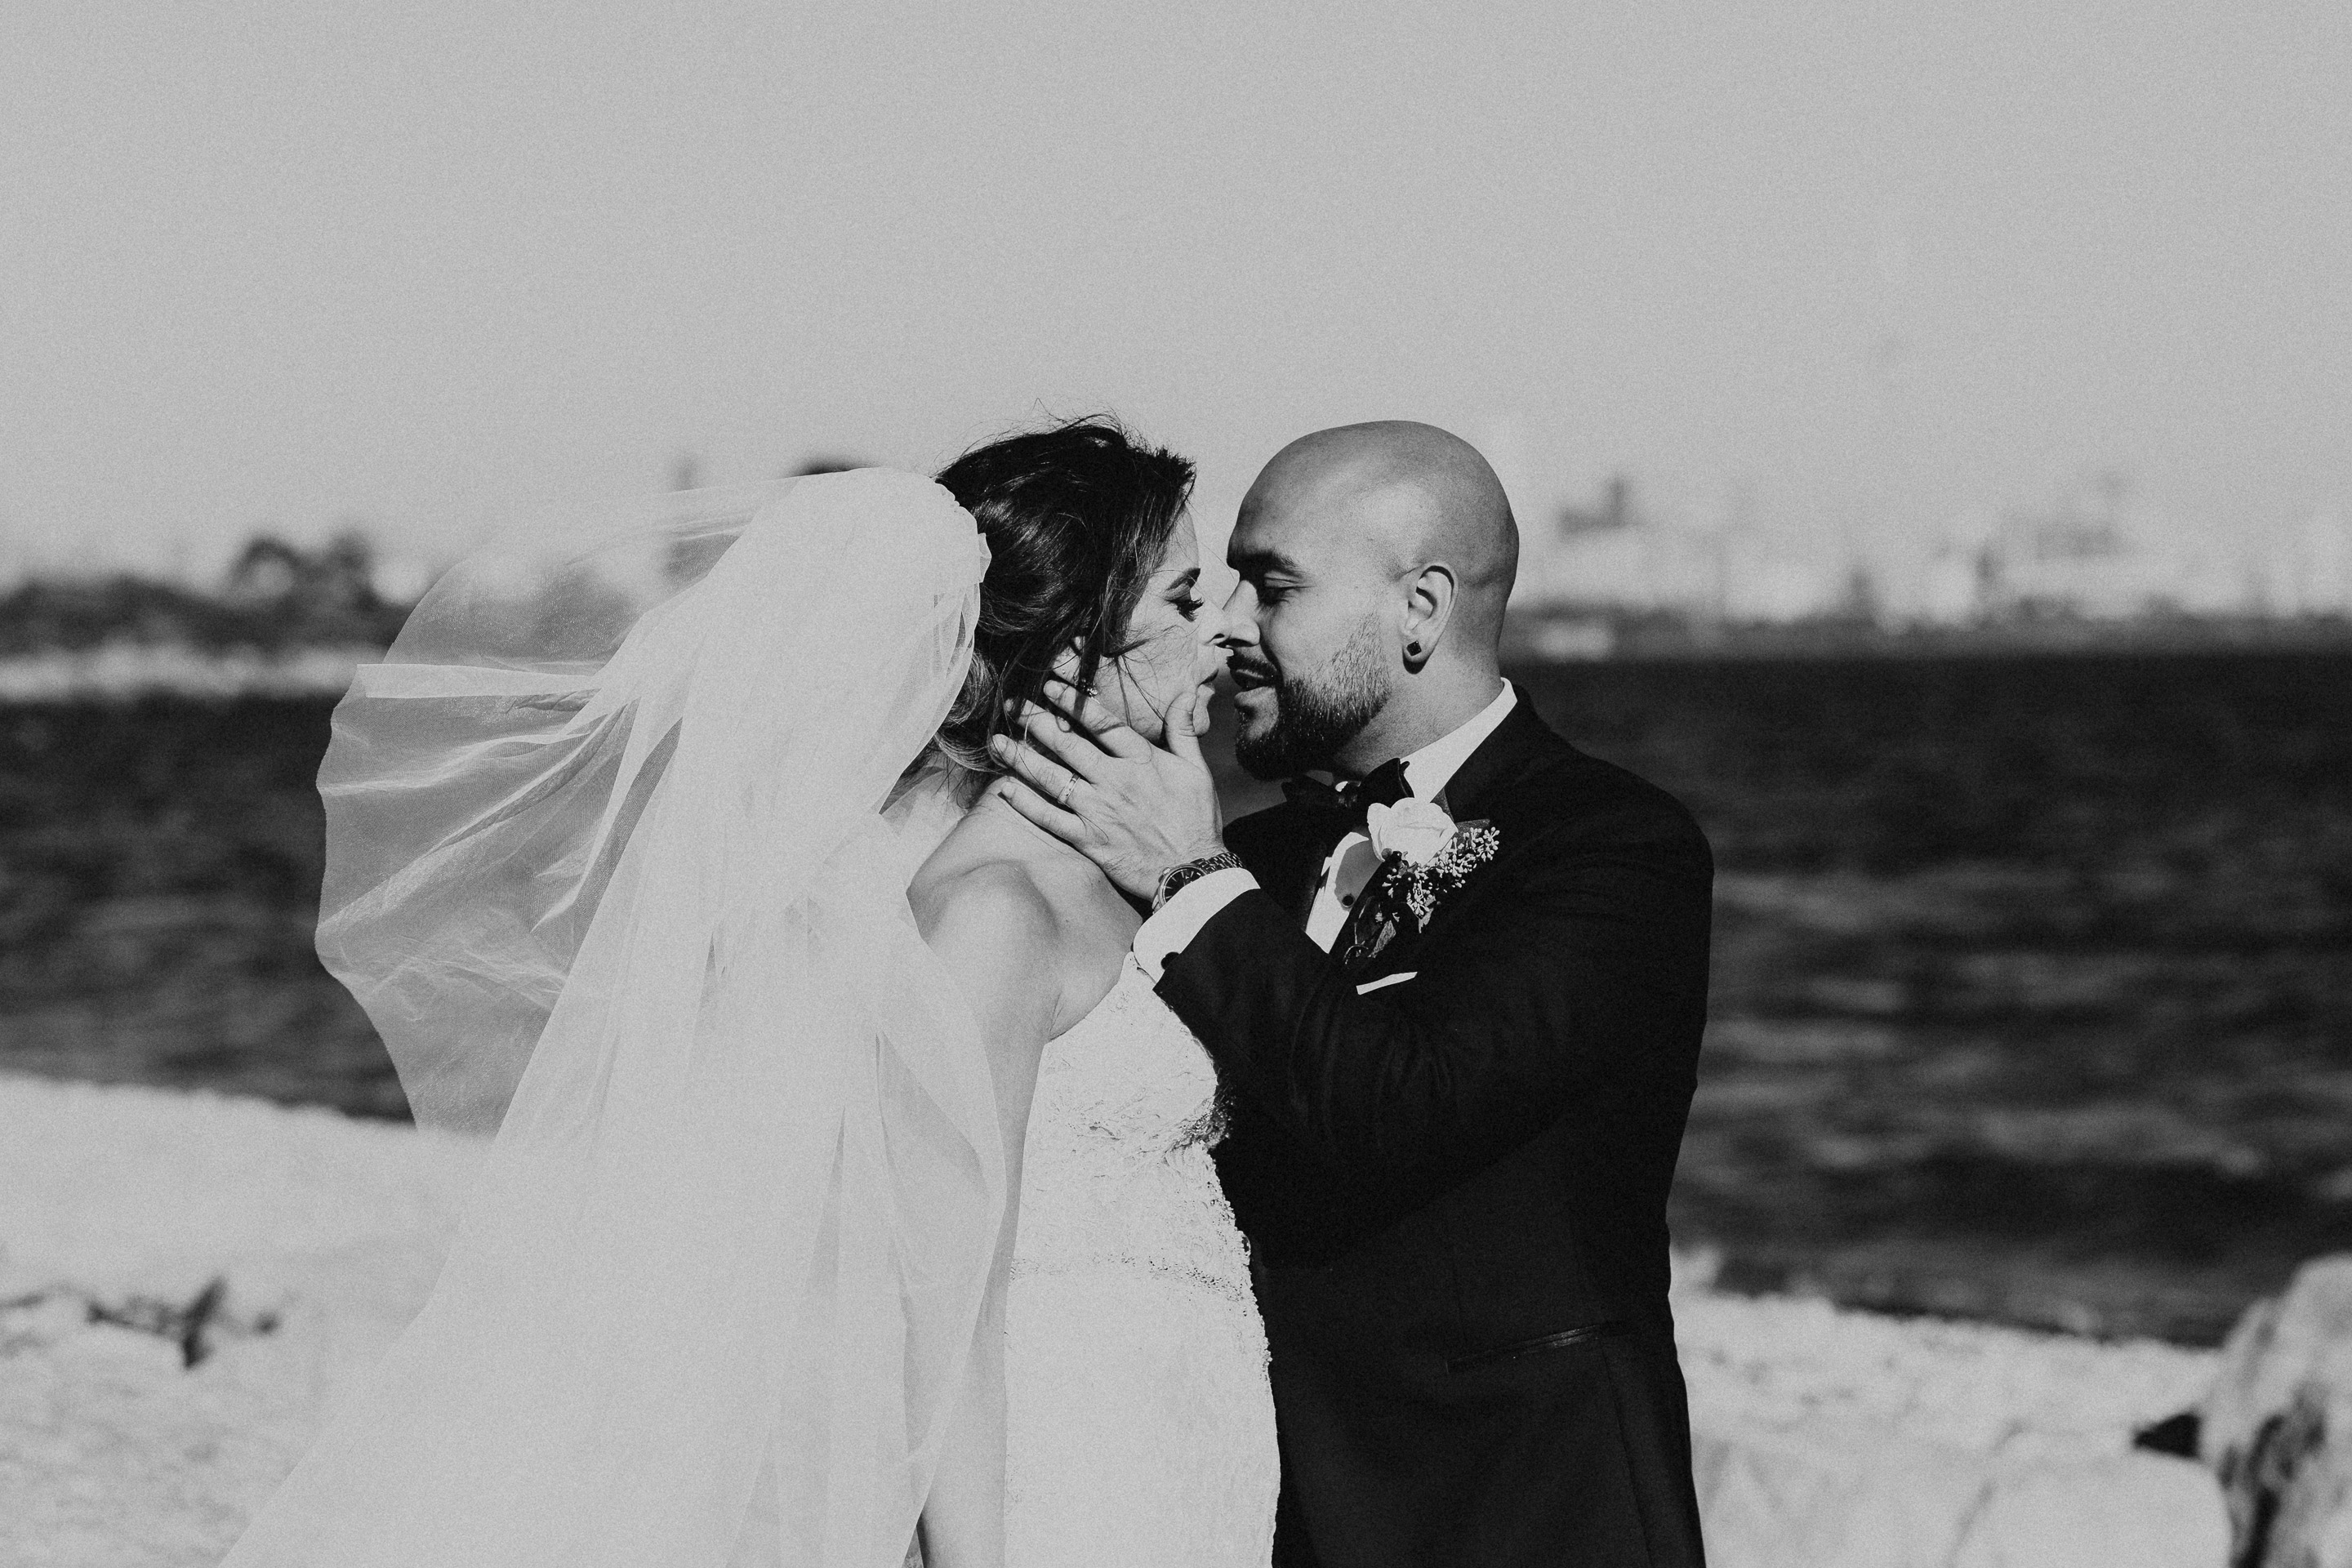 Palais Royale Wedding Pictures by Toronto Wedding Photographer Avangard Photography